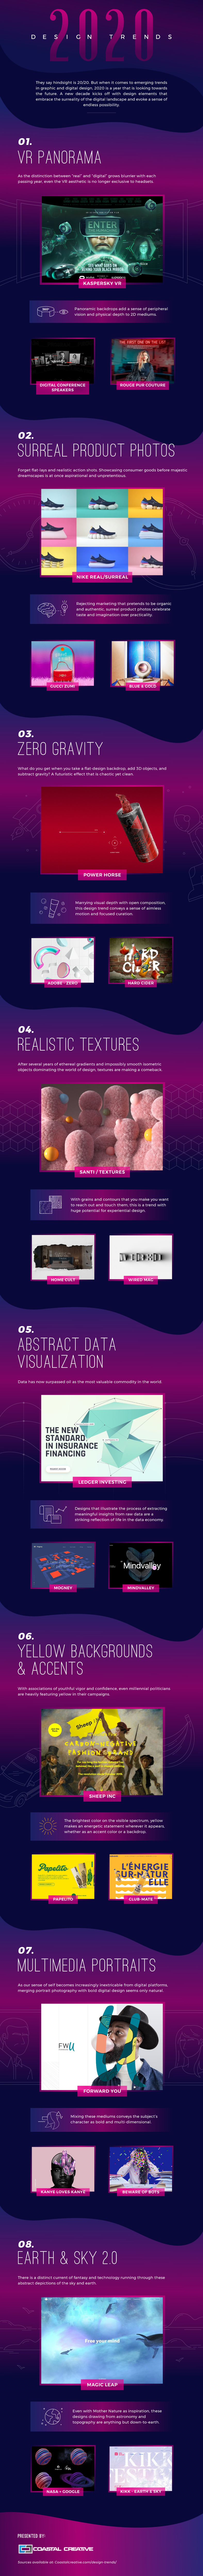 design trends 2020 infographic